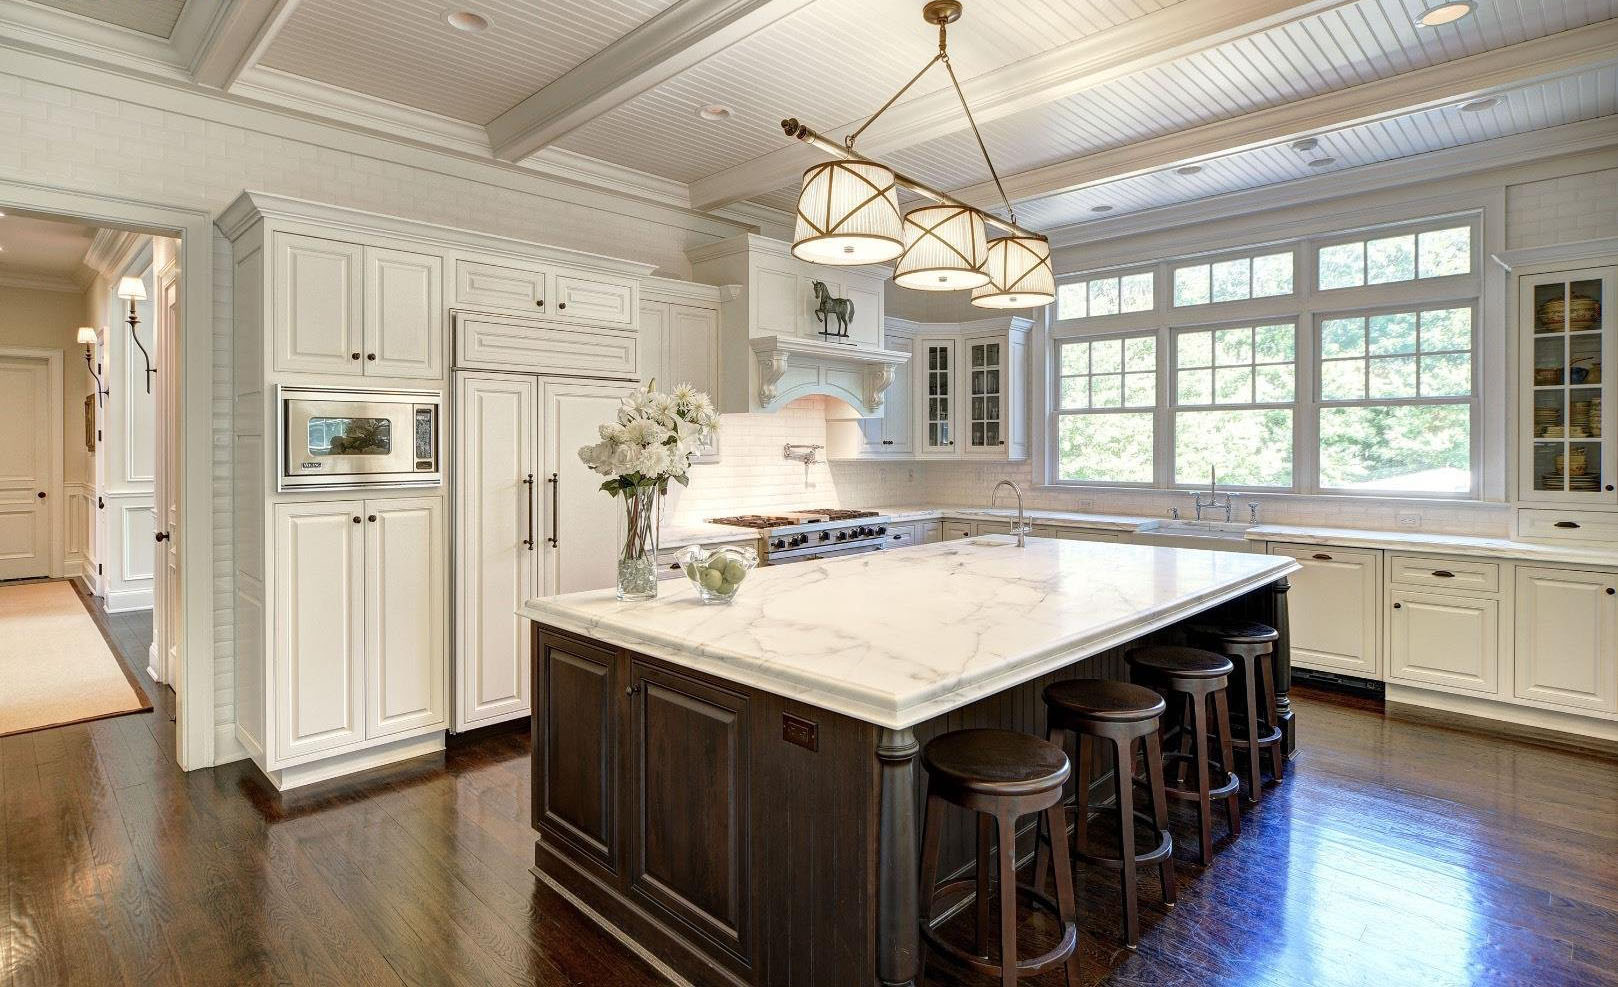 Cream colored kitchen cabinets with a rich brown island and matching stools. Marble countertops.